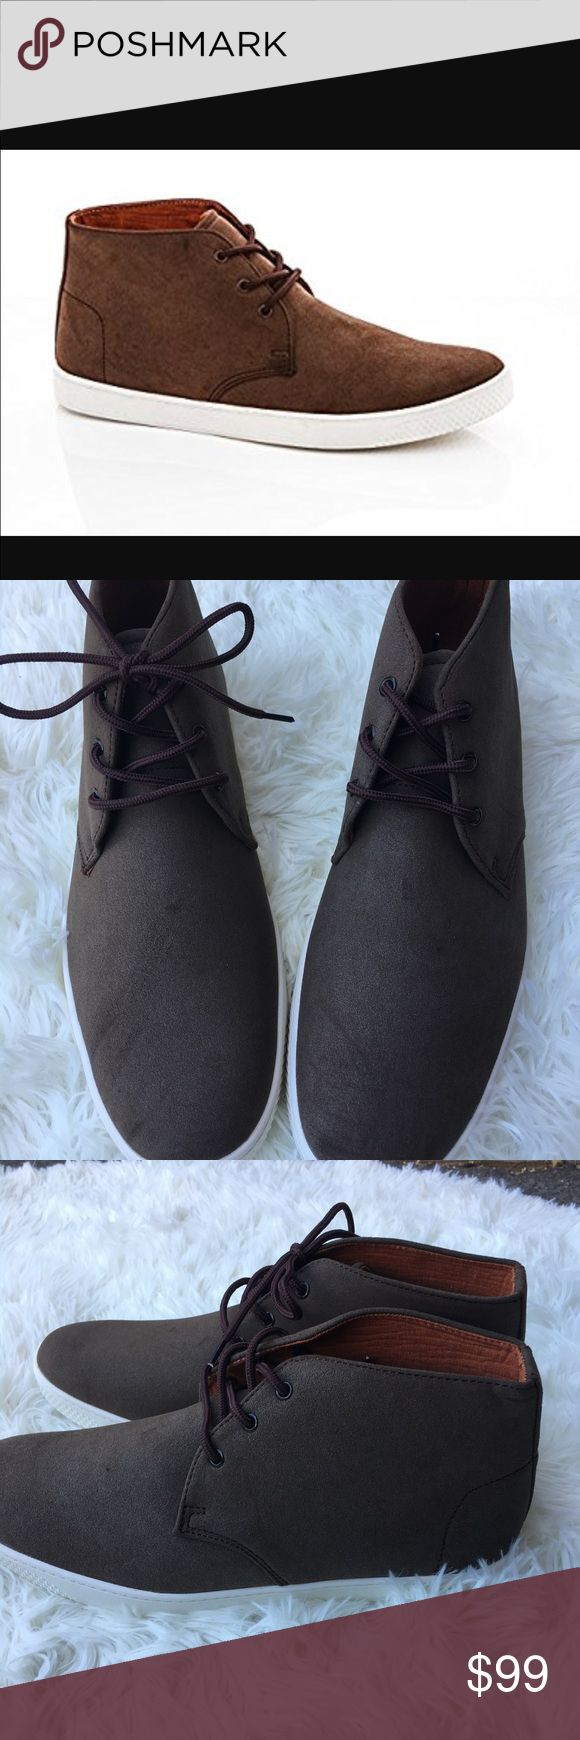 Franco vanucci men's suede chukka boot New in box. The shoes got style and comfort. Ankle high chukka will complement any casual or work occasion and cradle your feet the whole time. franco vanucci Shoes Chukka Boots